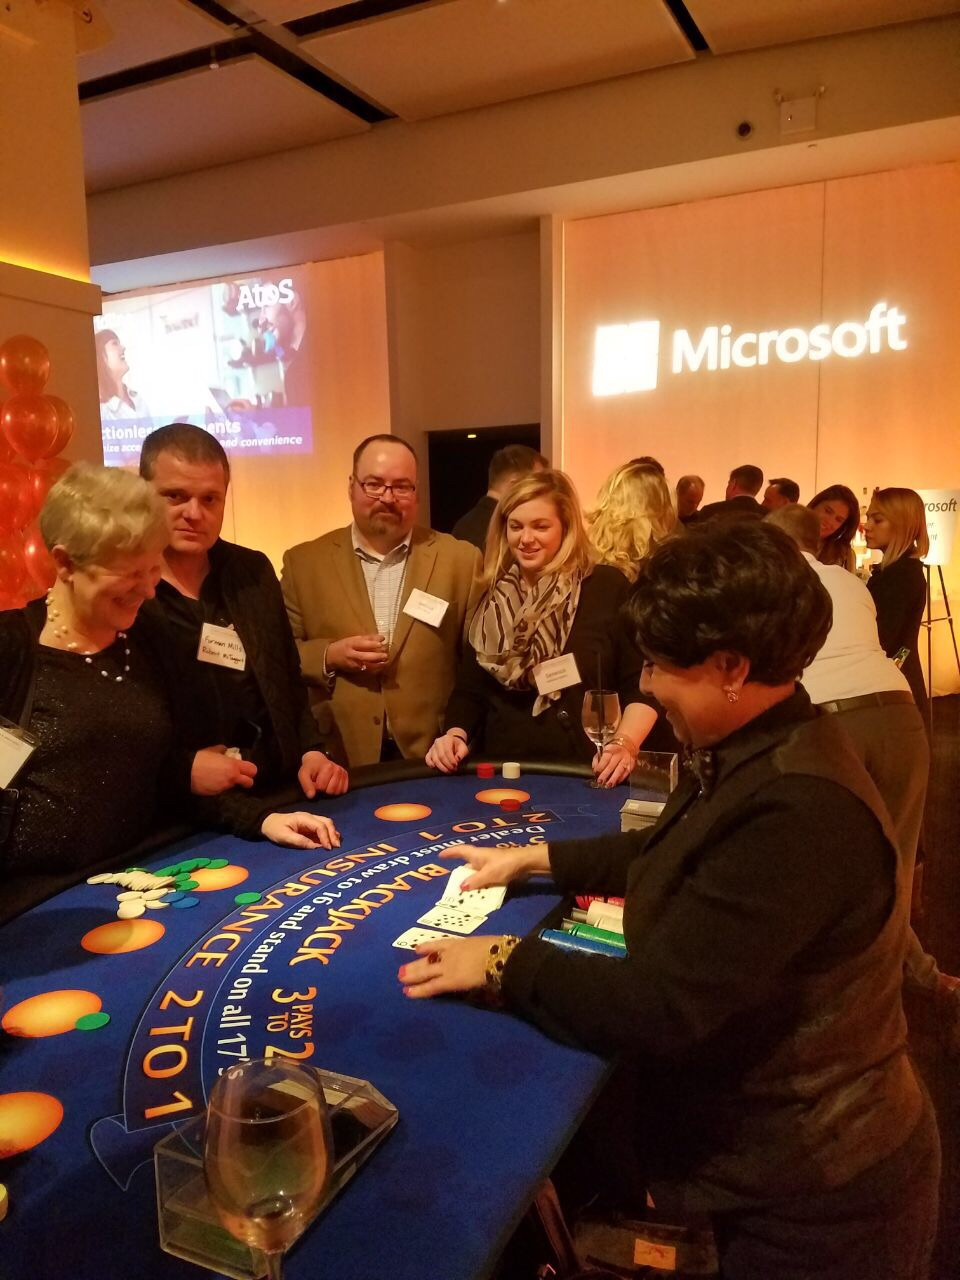 casino party with blackjack table and dealer